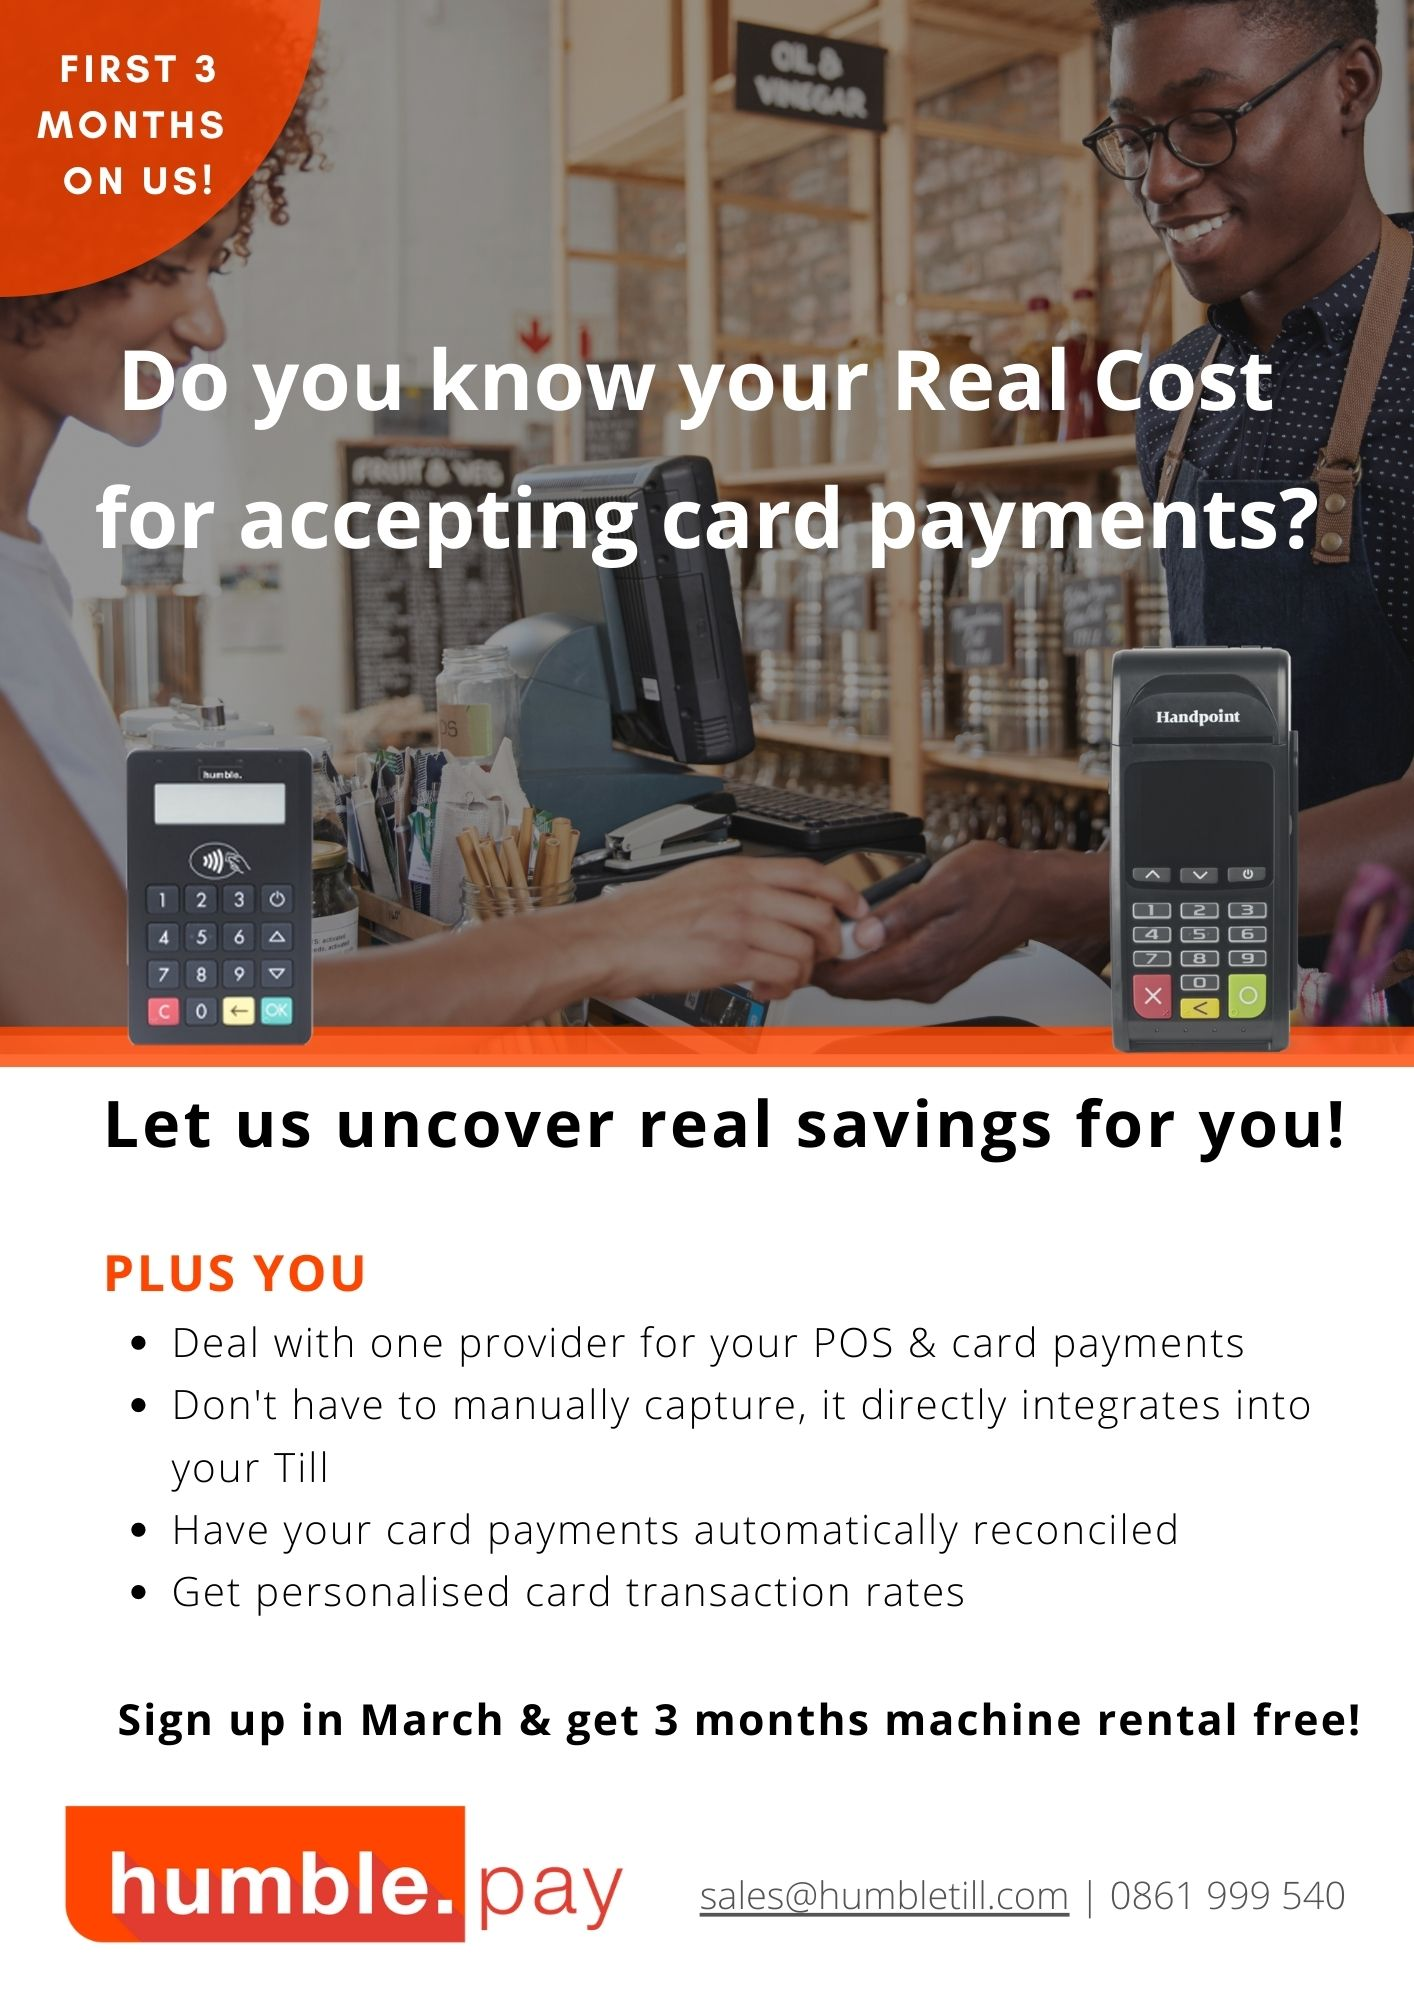 Card payment promotional offer